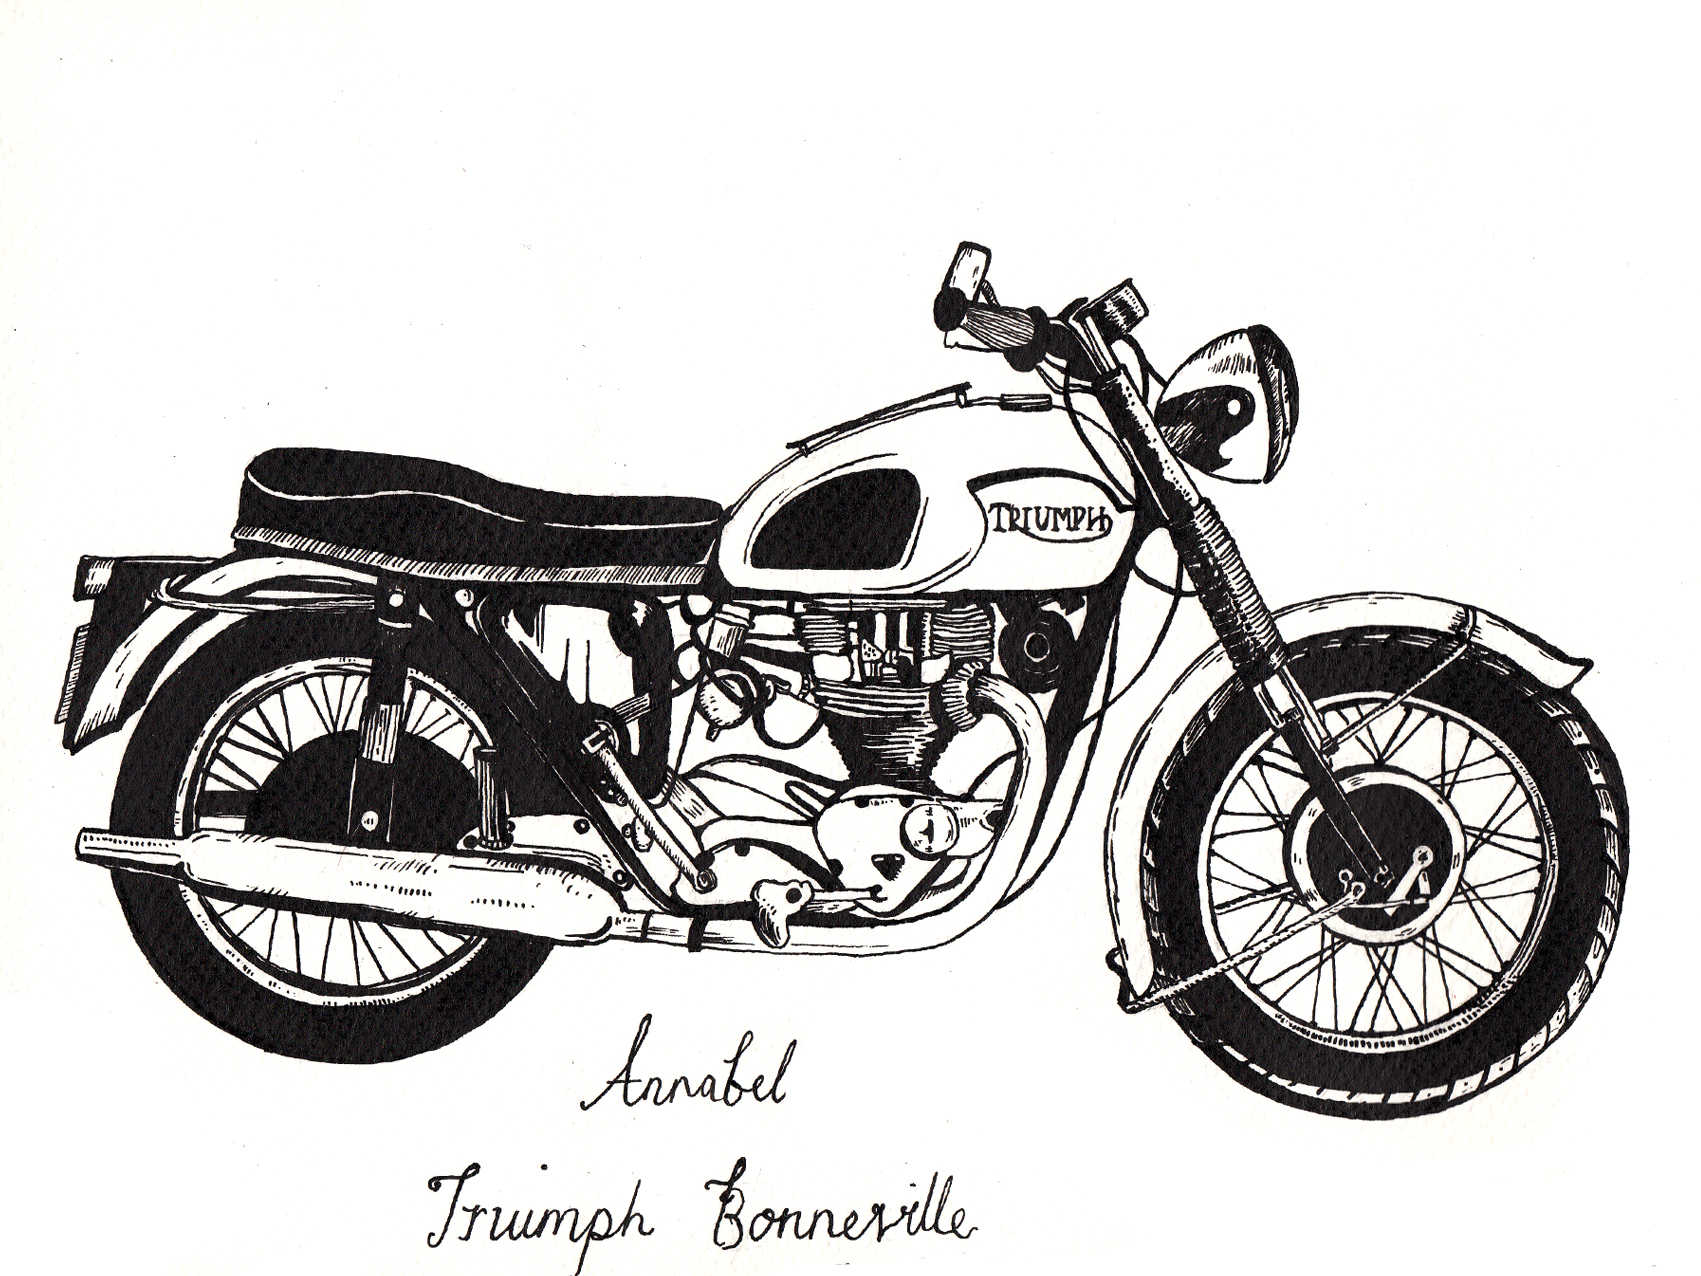 Line Drawing Motorcycle : Motorcycle art g e o r d i b k page